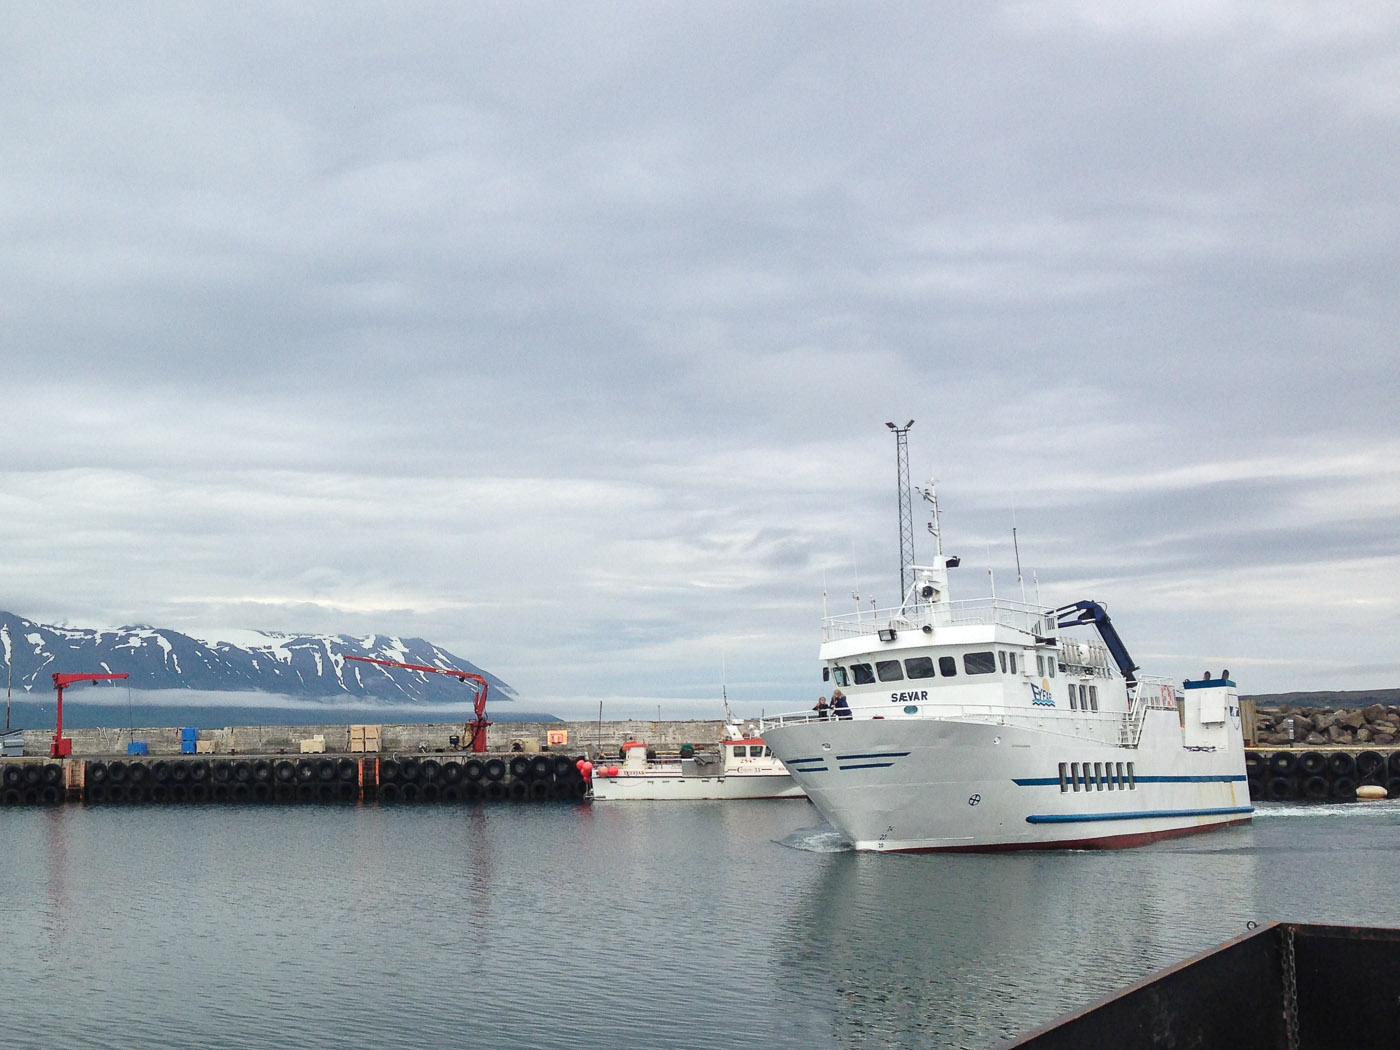 Northern Iceland - Hrísey island. On vacation. - 'Hrísey. Our' ferry arrives ... (22 July 2014)